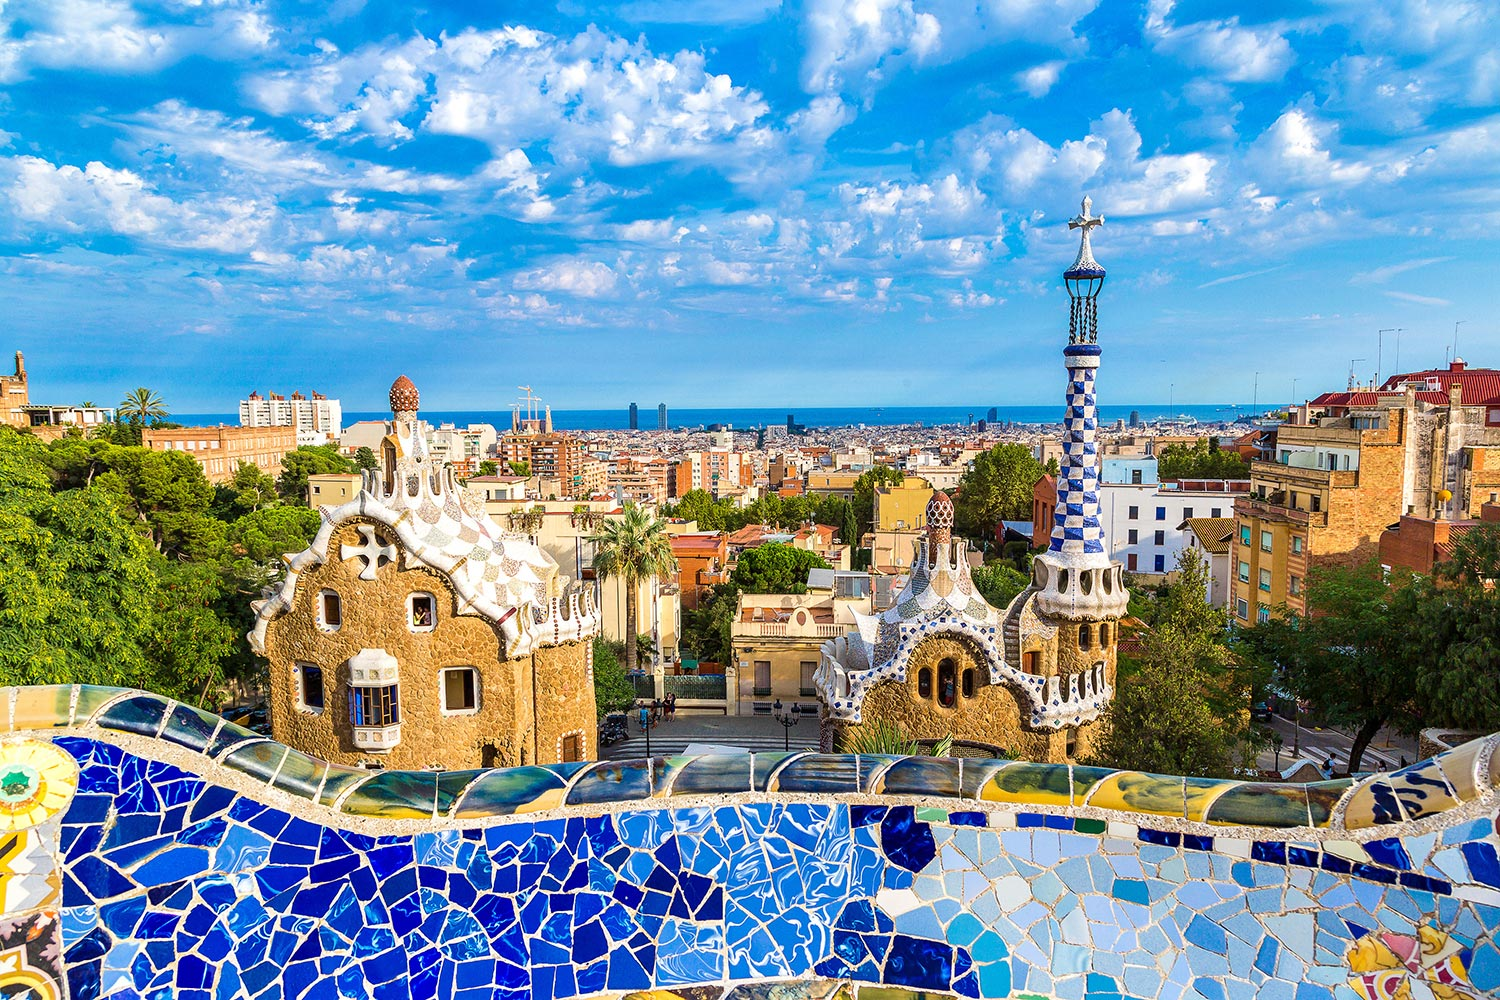 A blue-tiled, mosaic bridge overlooks the city of Barcelona